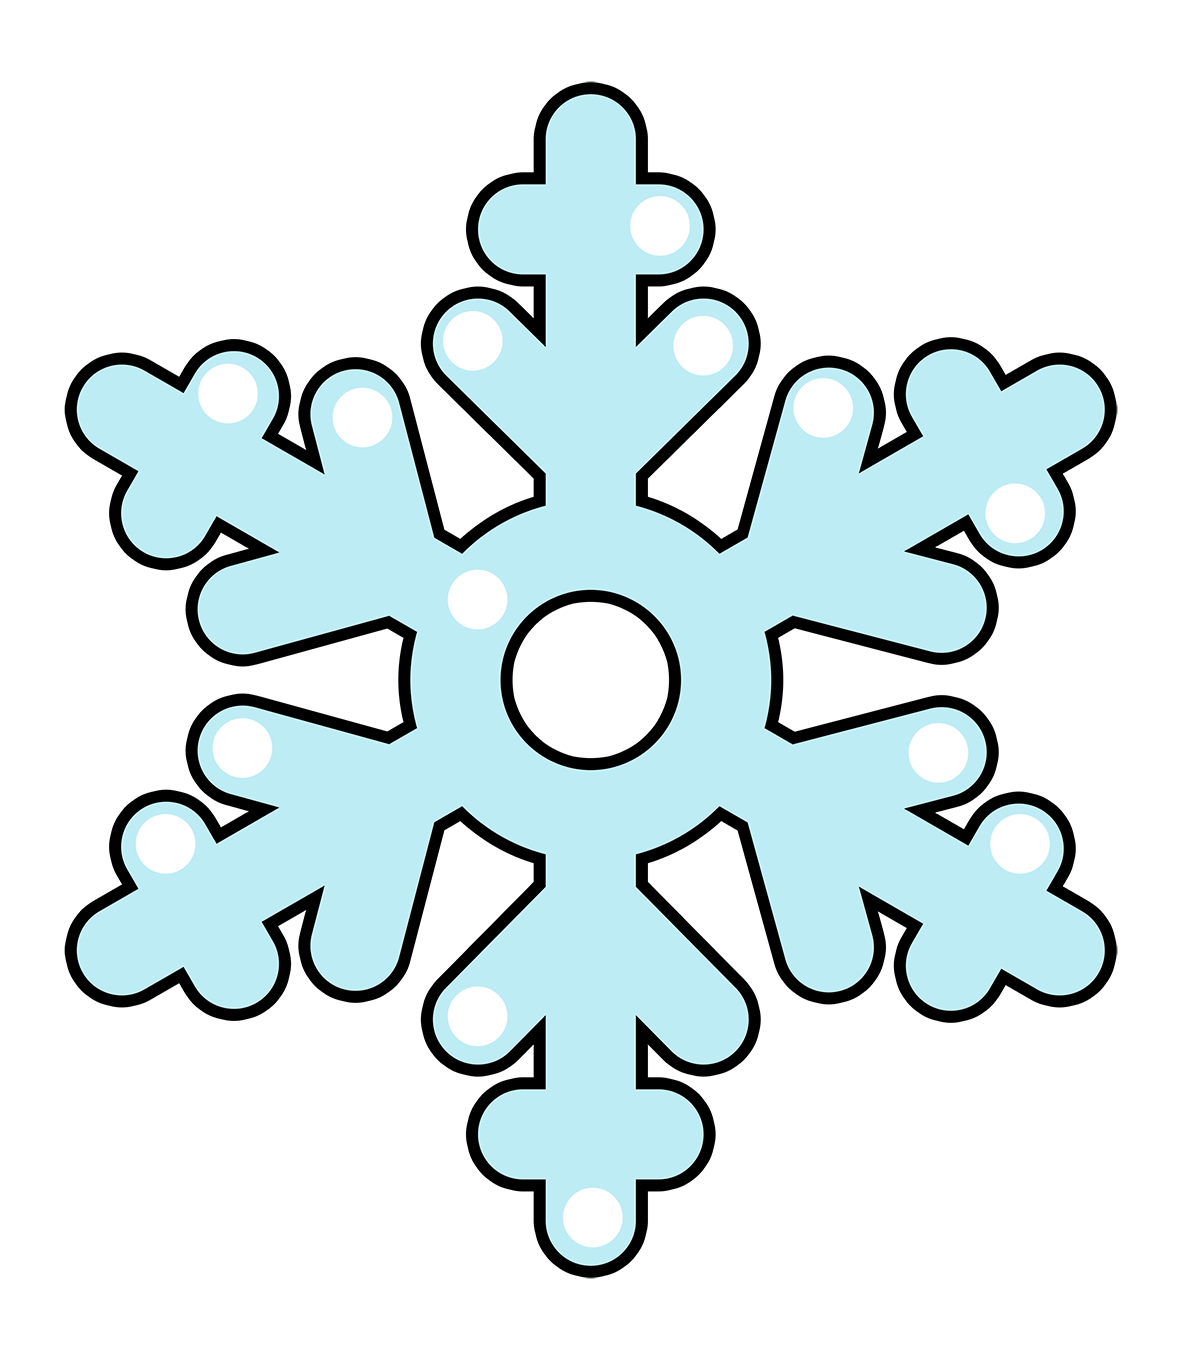 Snowflake clipart #7, Download drawings